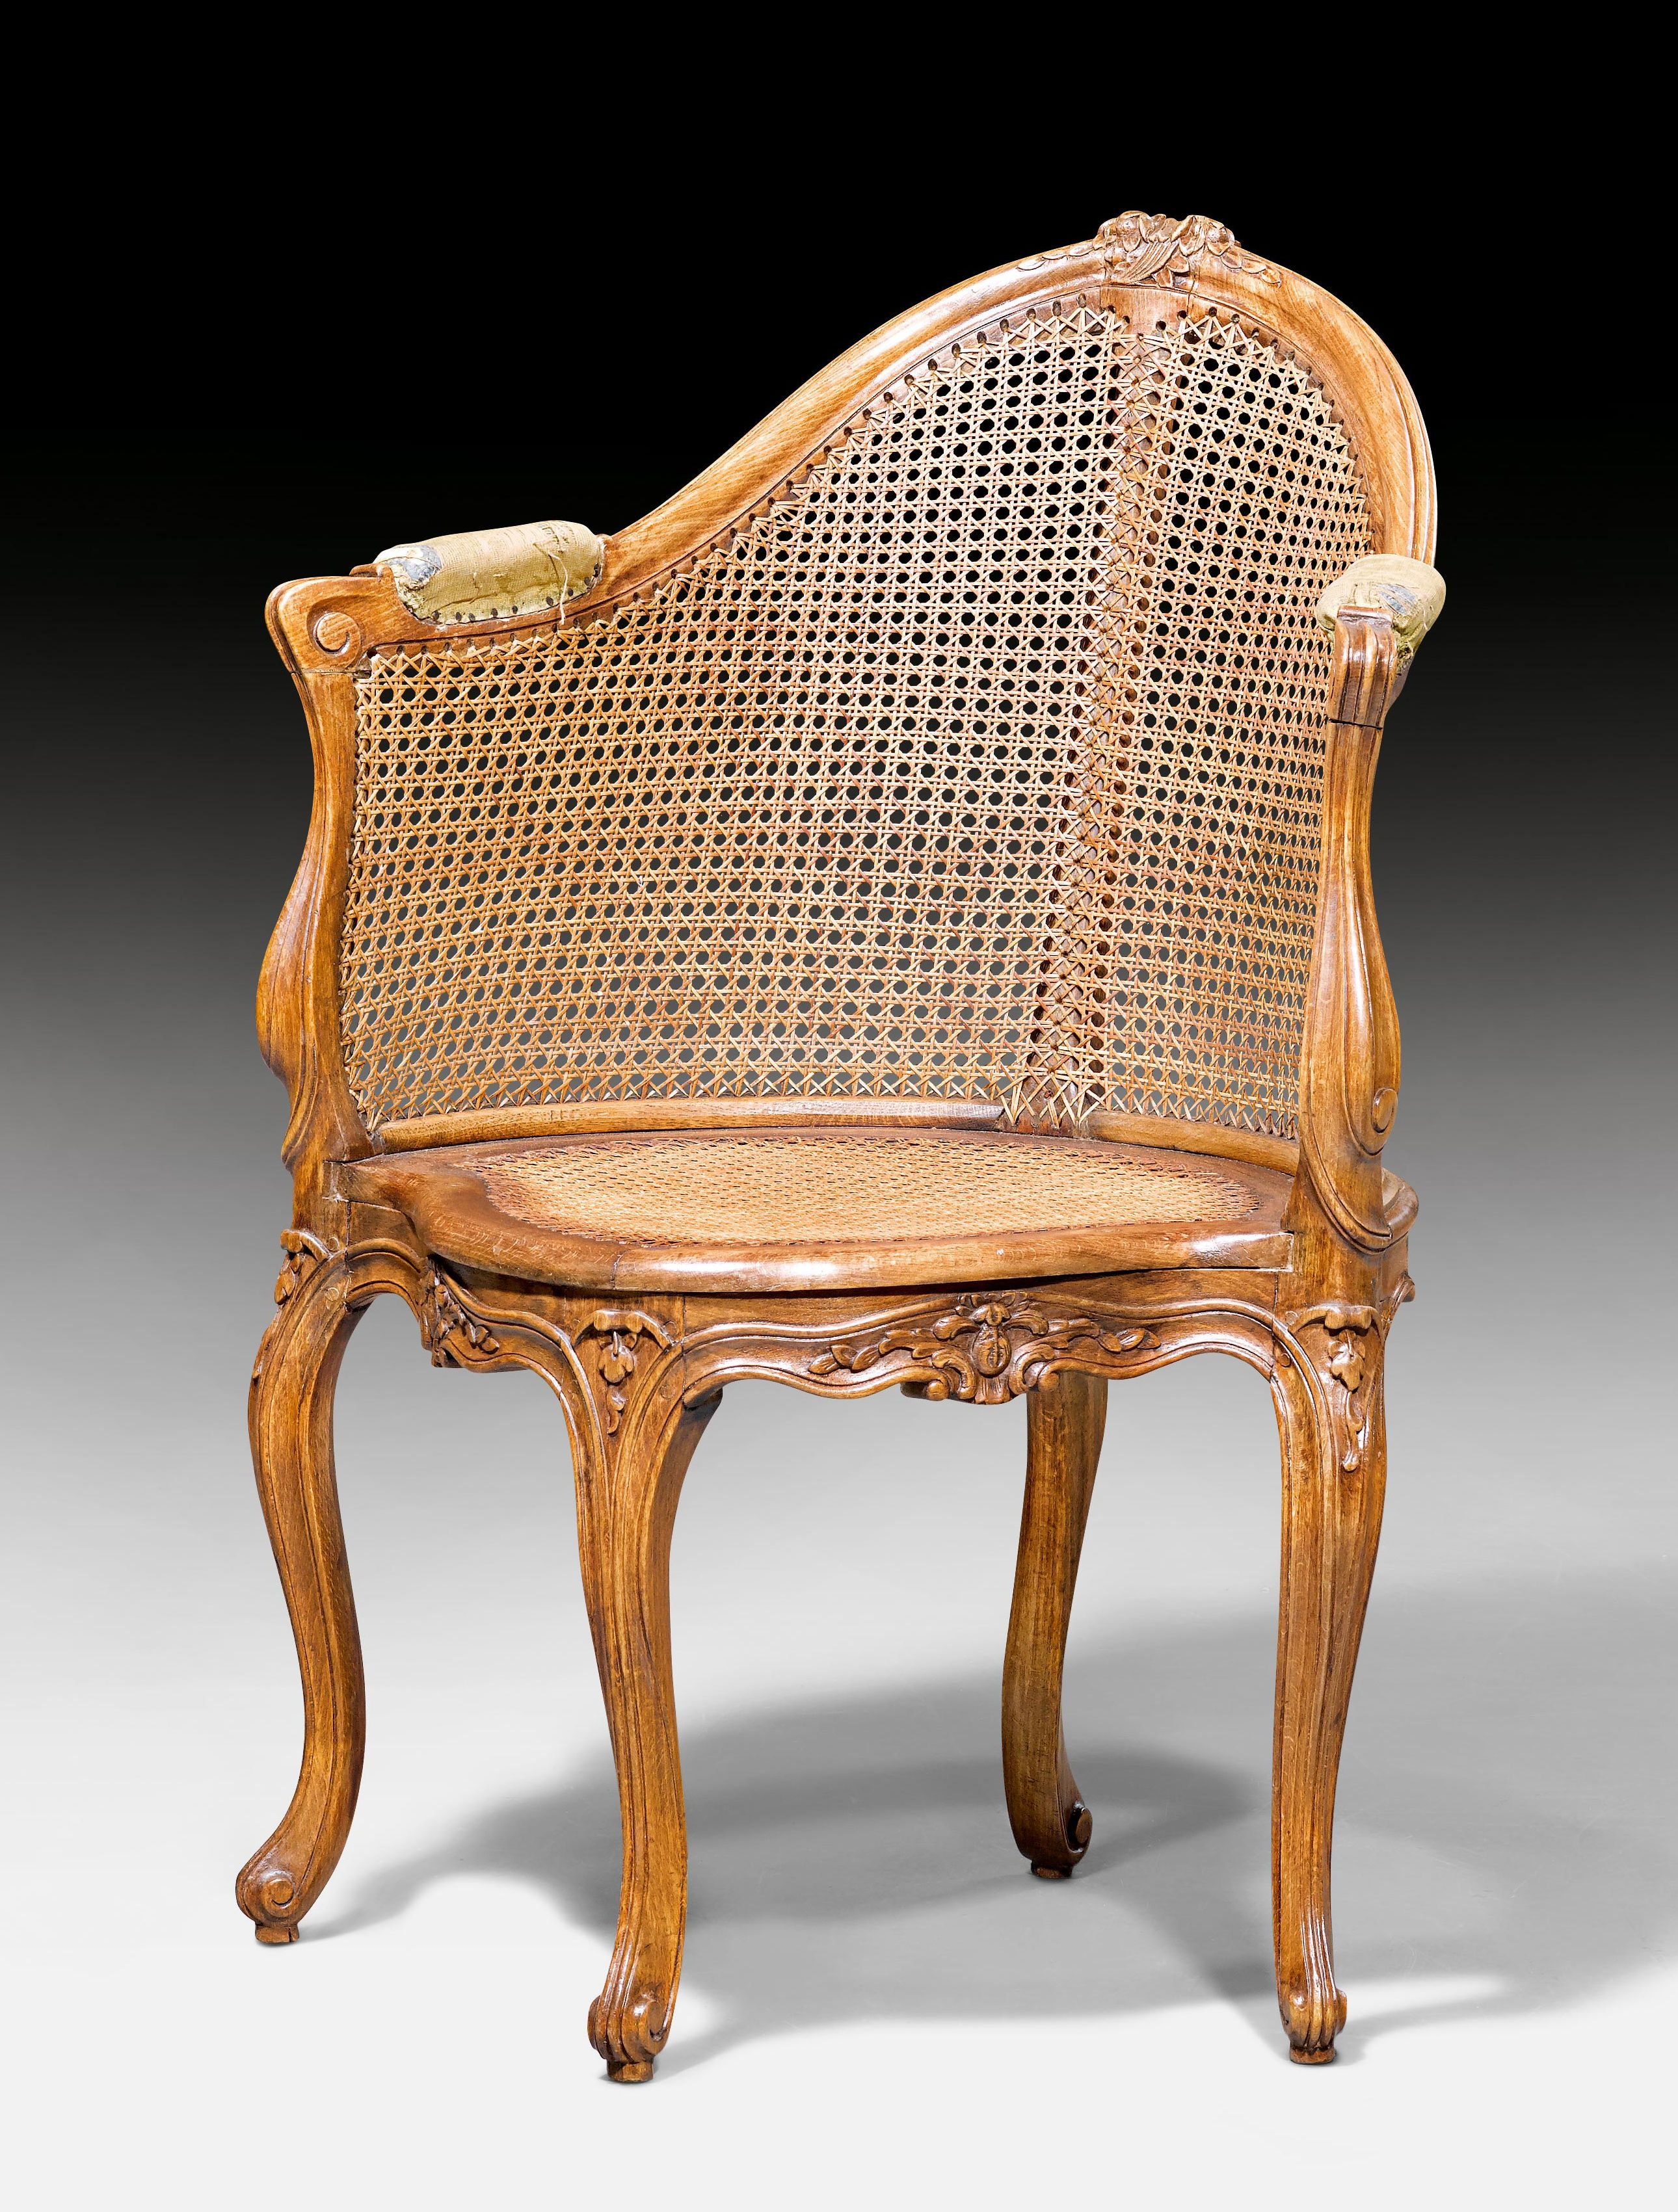 C1750 Fauteuil De Bureau Desk Chair Louis Xv France Ca 1750 Beech Molded And Finely Carved With Flowers Leaves And Deco Chair Chaise Chair Wicker Chair